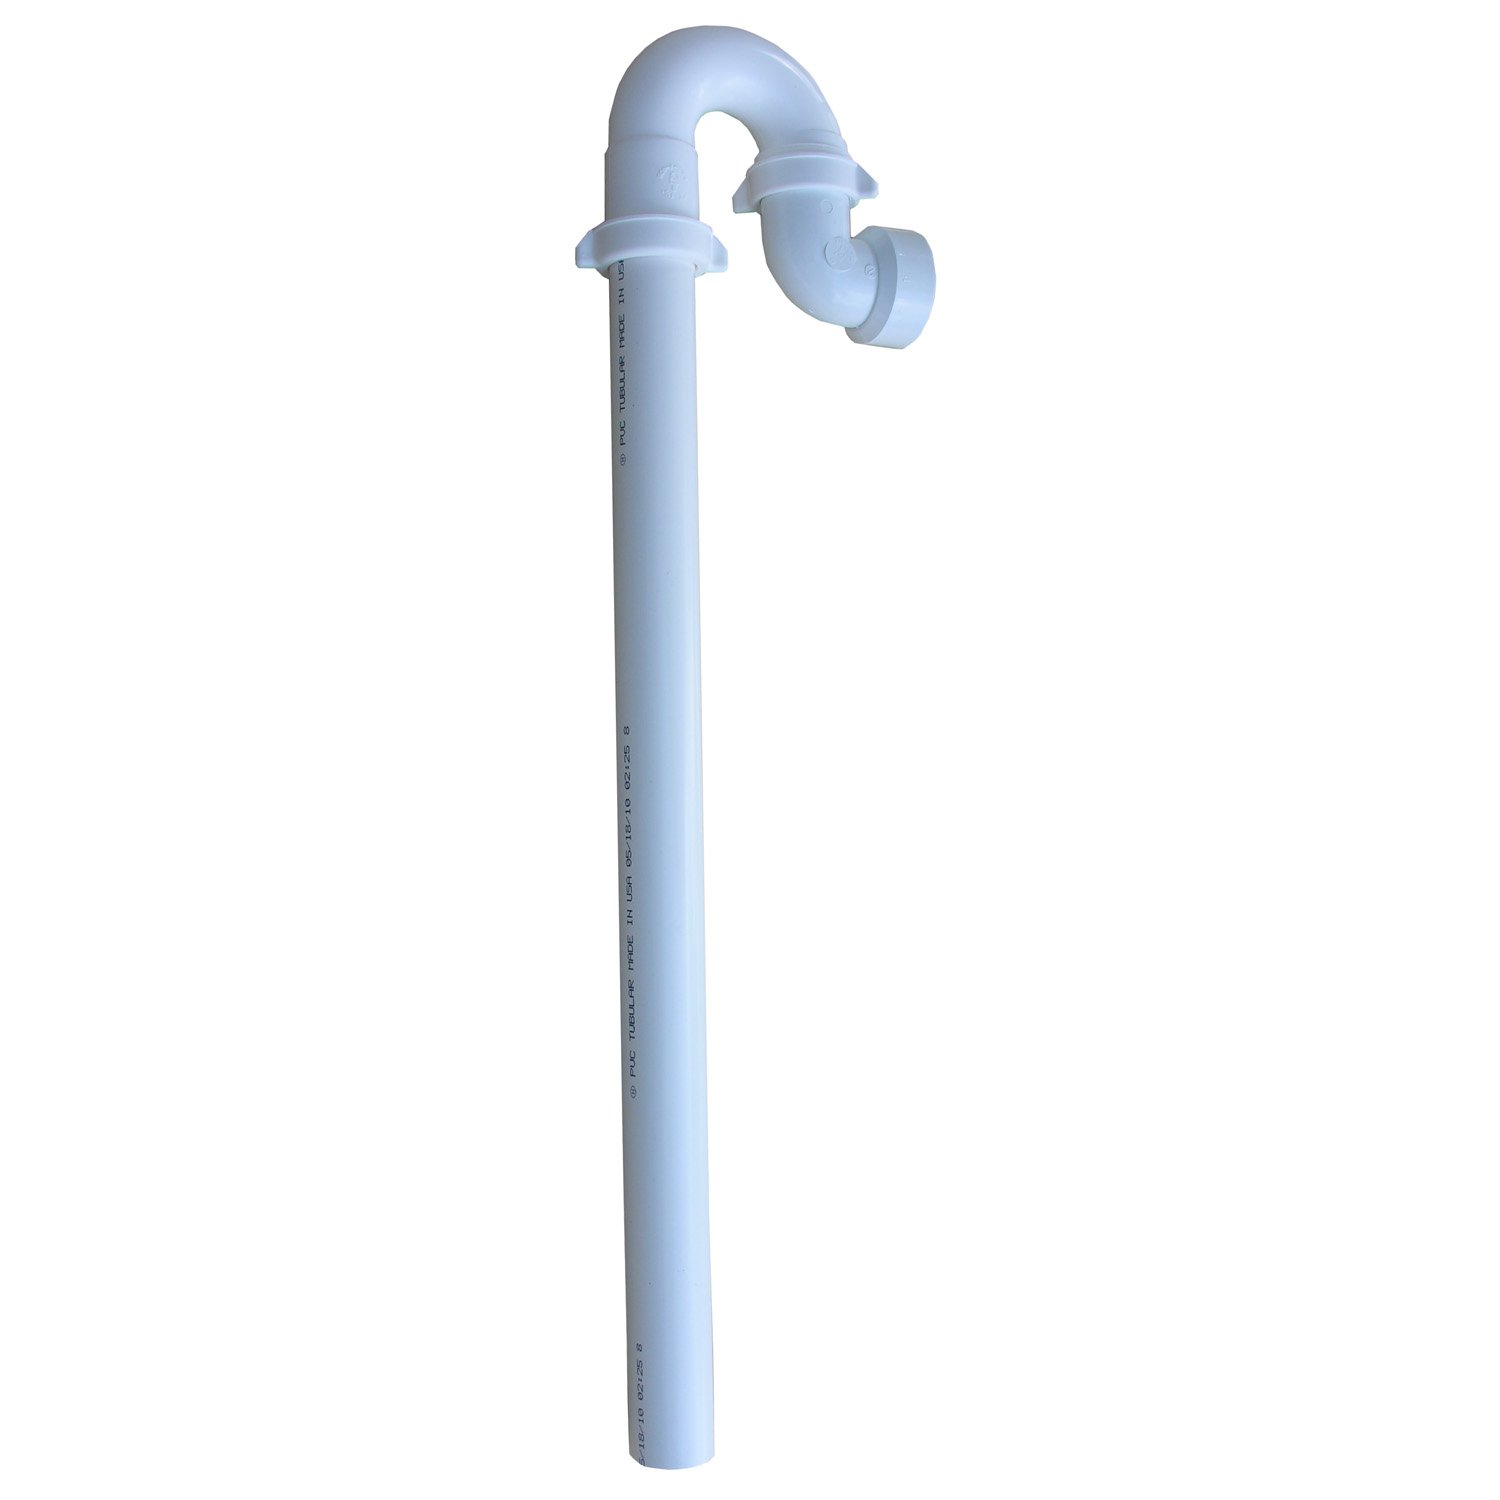 LASCO 03-4337 Plastic Tubular Washing Machine Trap with Stand Pipe and Elbow for DWV Pipe Connection, 1 1/2-Inch, White